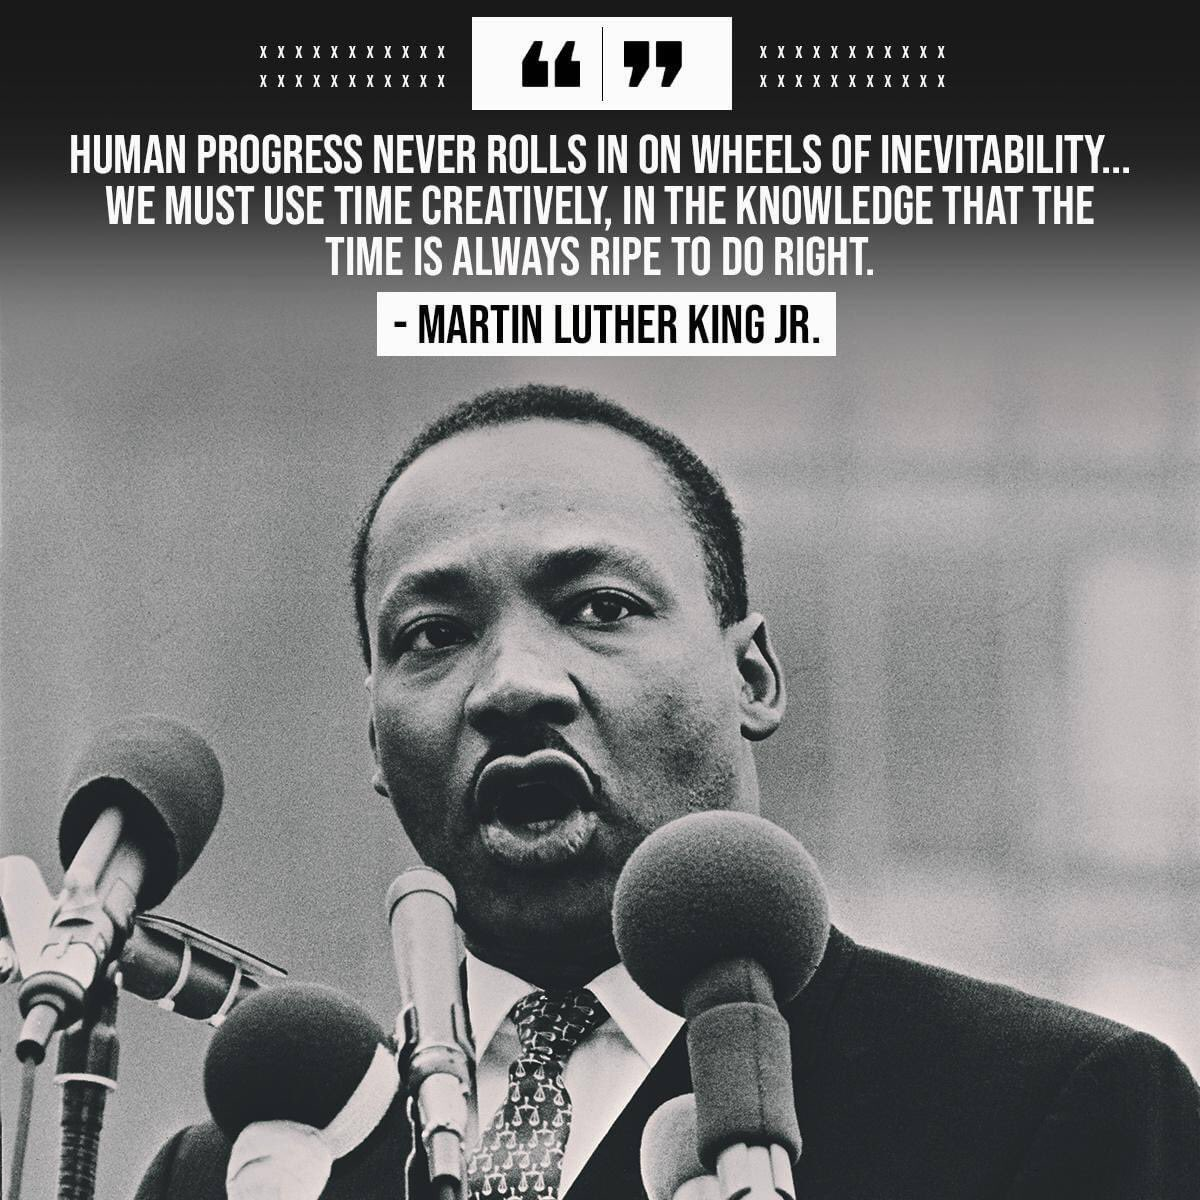 Loving this quote from him. #MLKDay #RememberDrKing